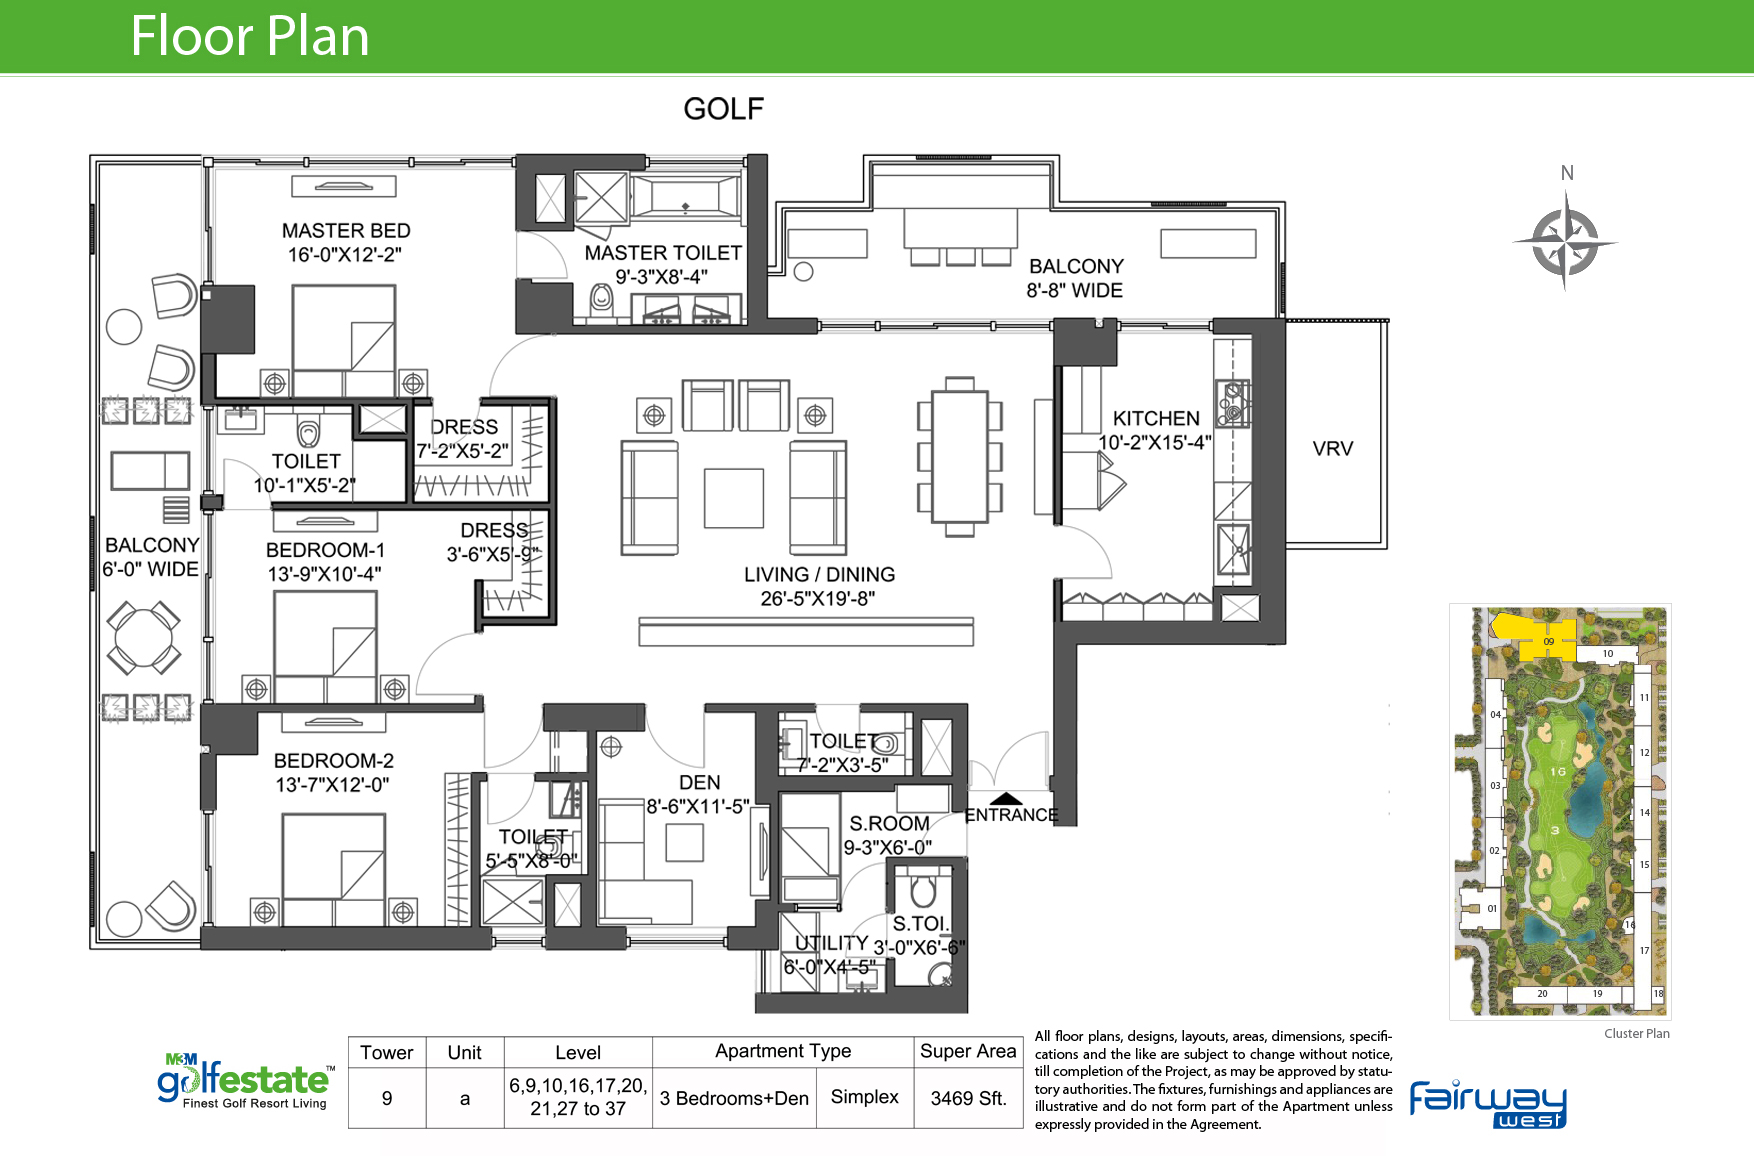 Floor plan of M3M Golf estate Fairway West 3888 Sqft